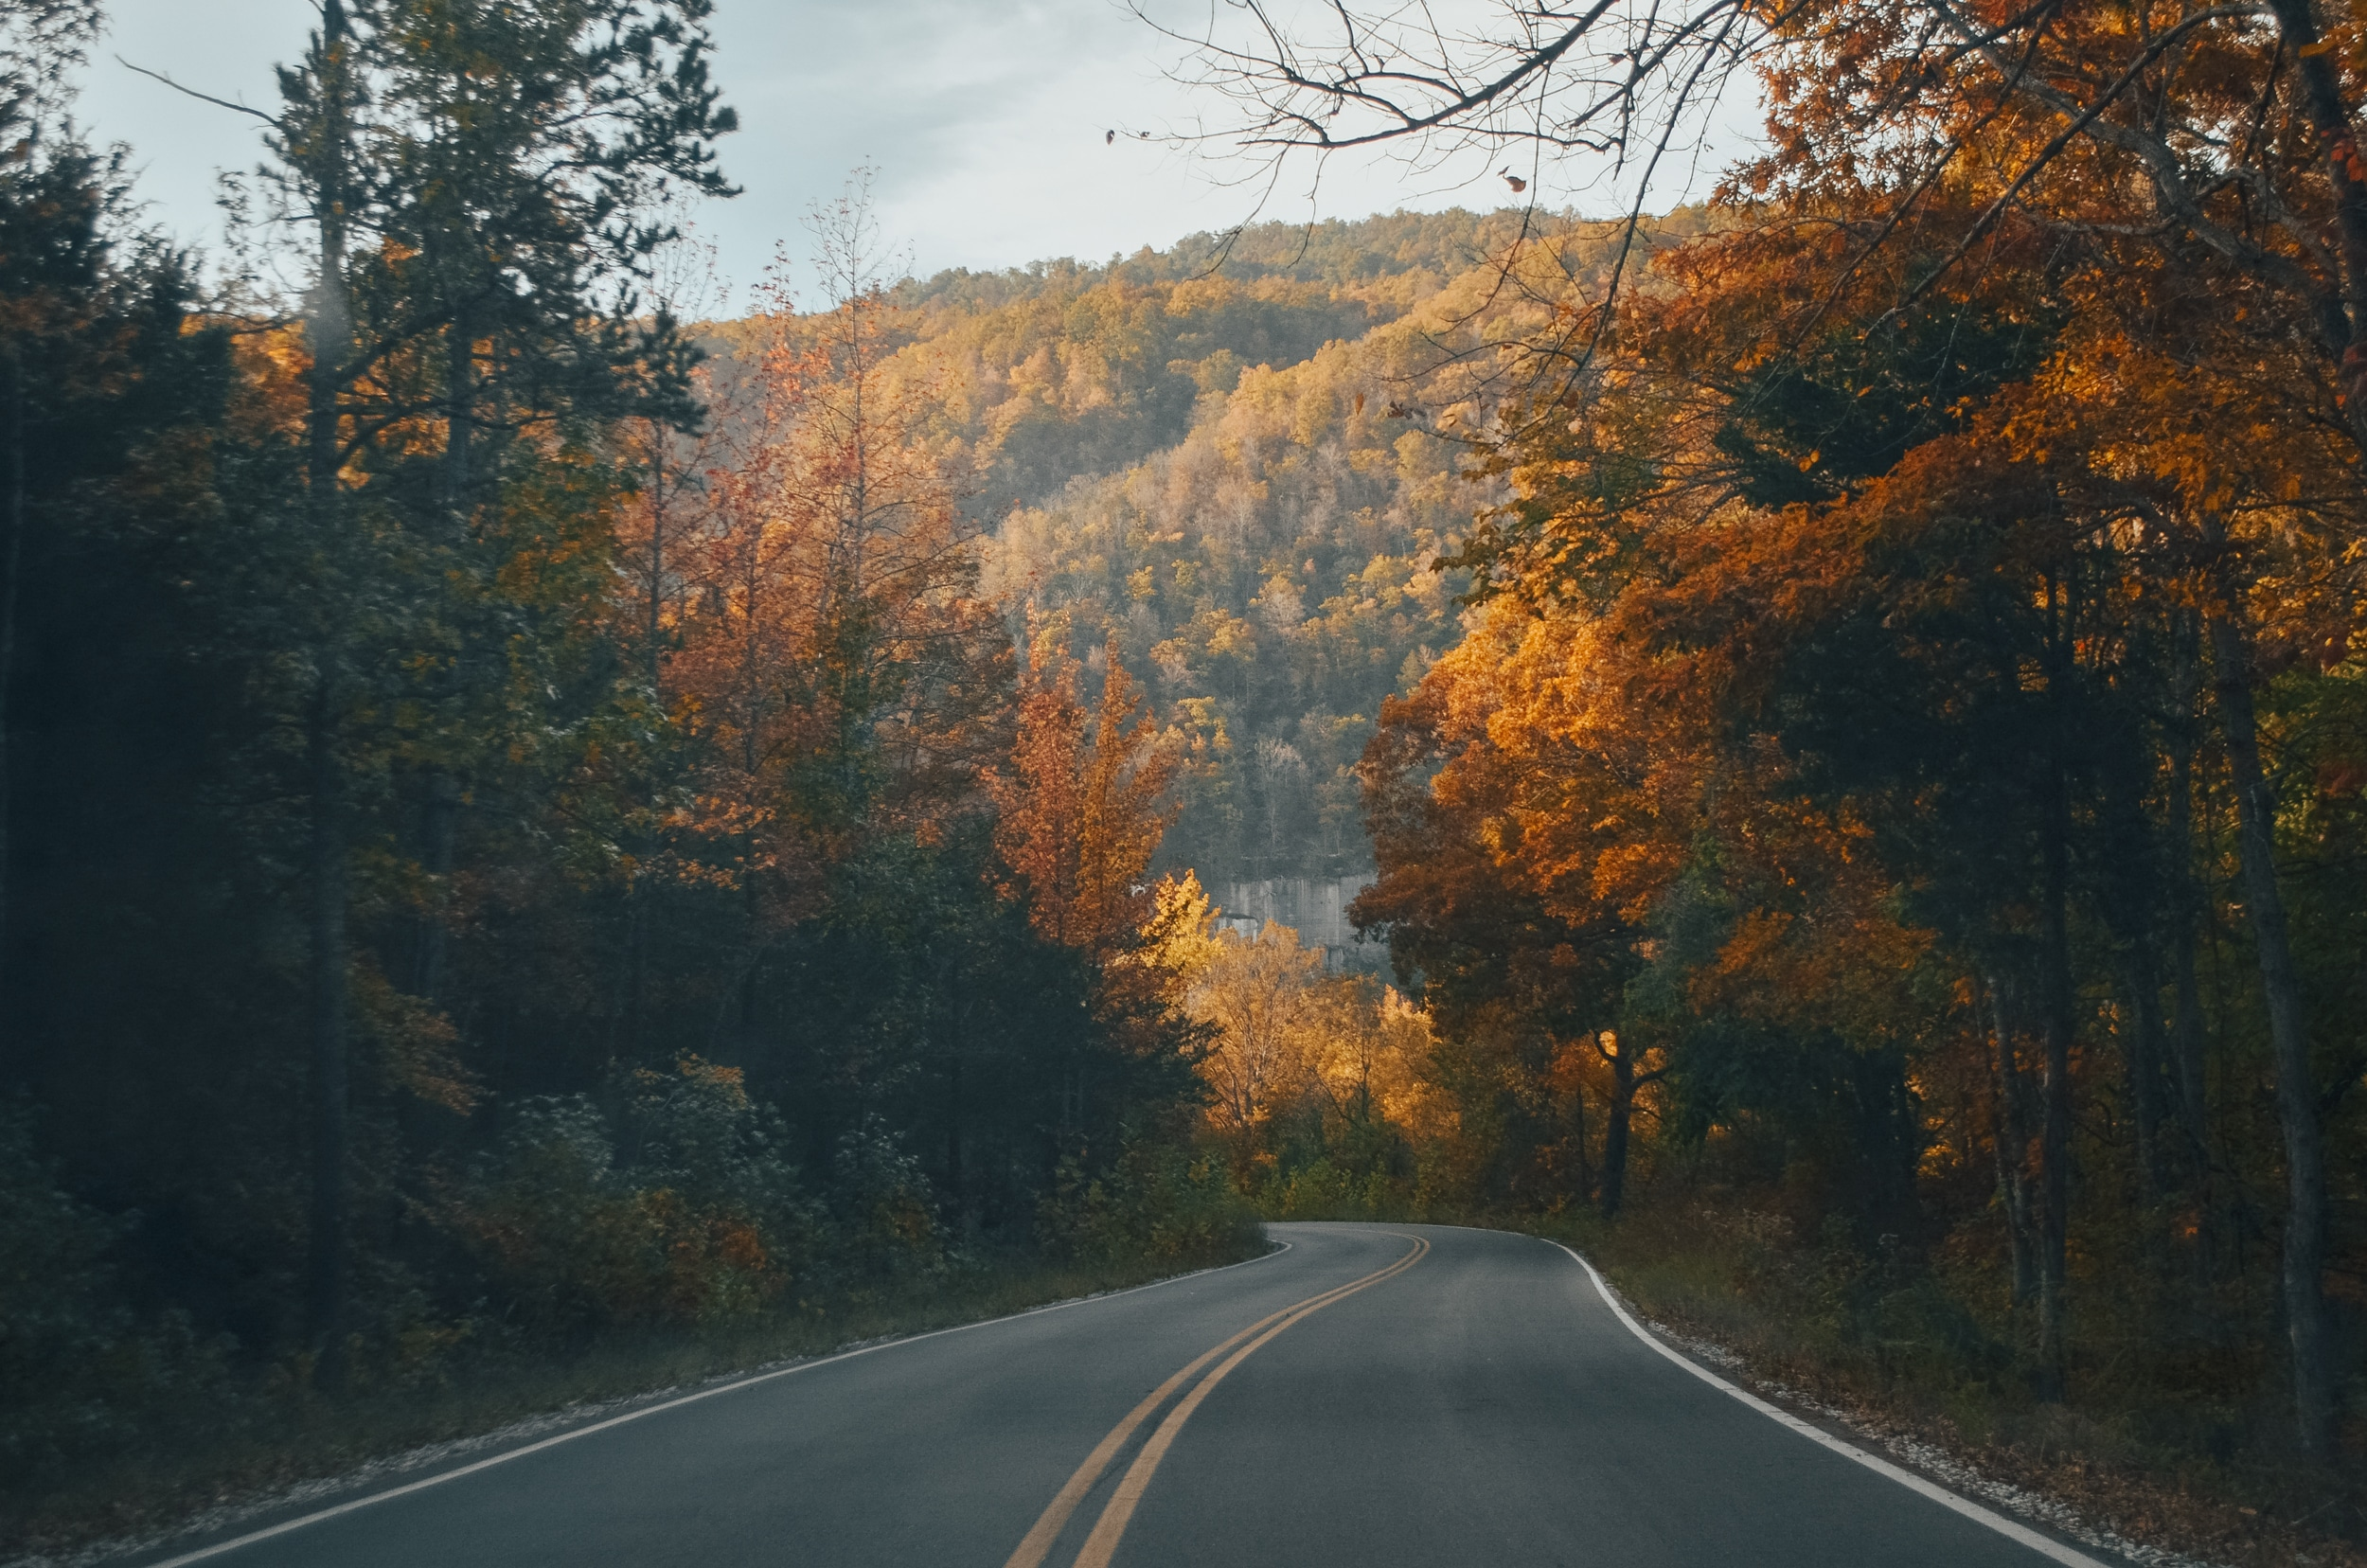 Fall view of Ponca road and Ozarks in the background